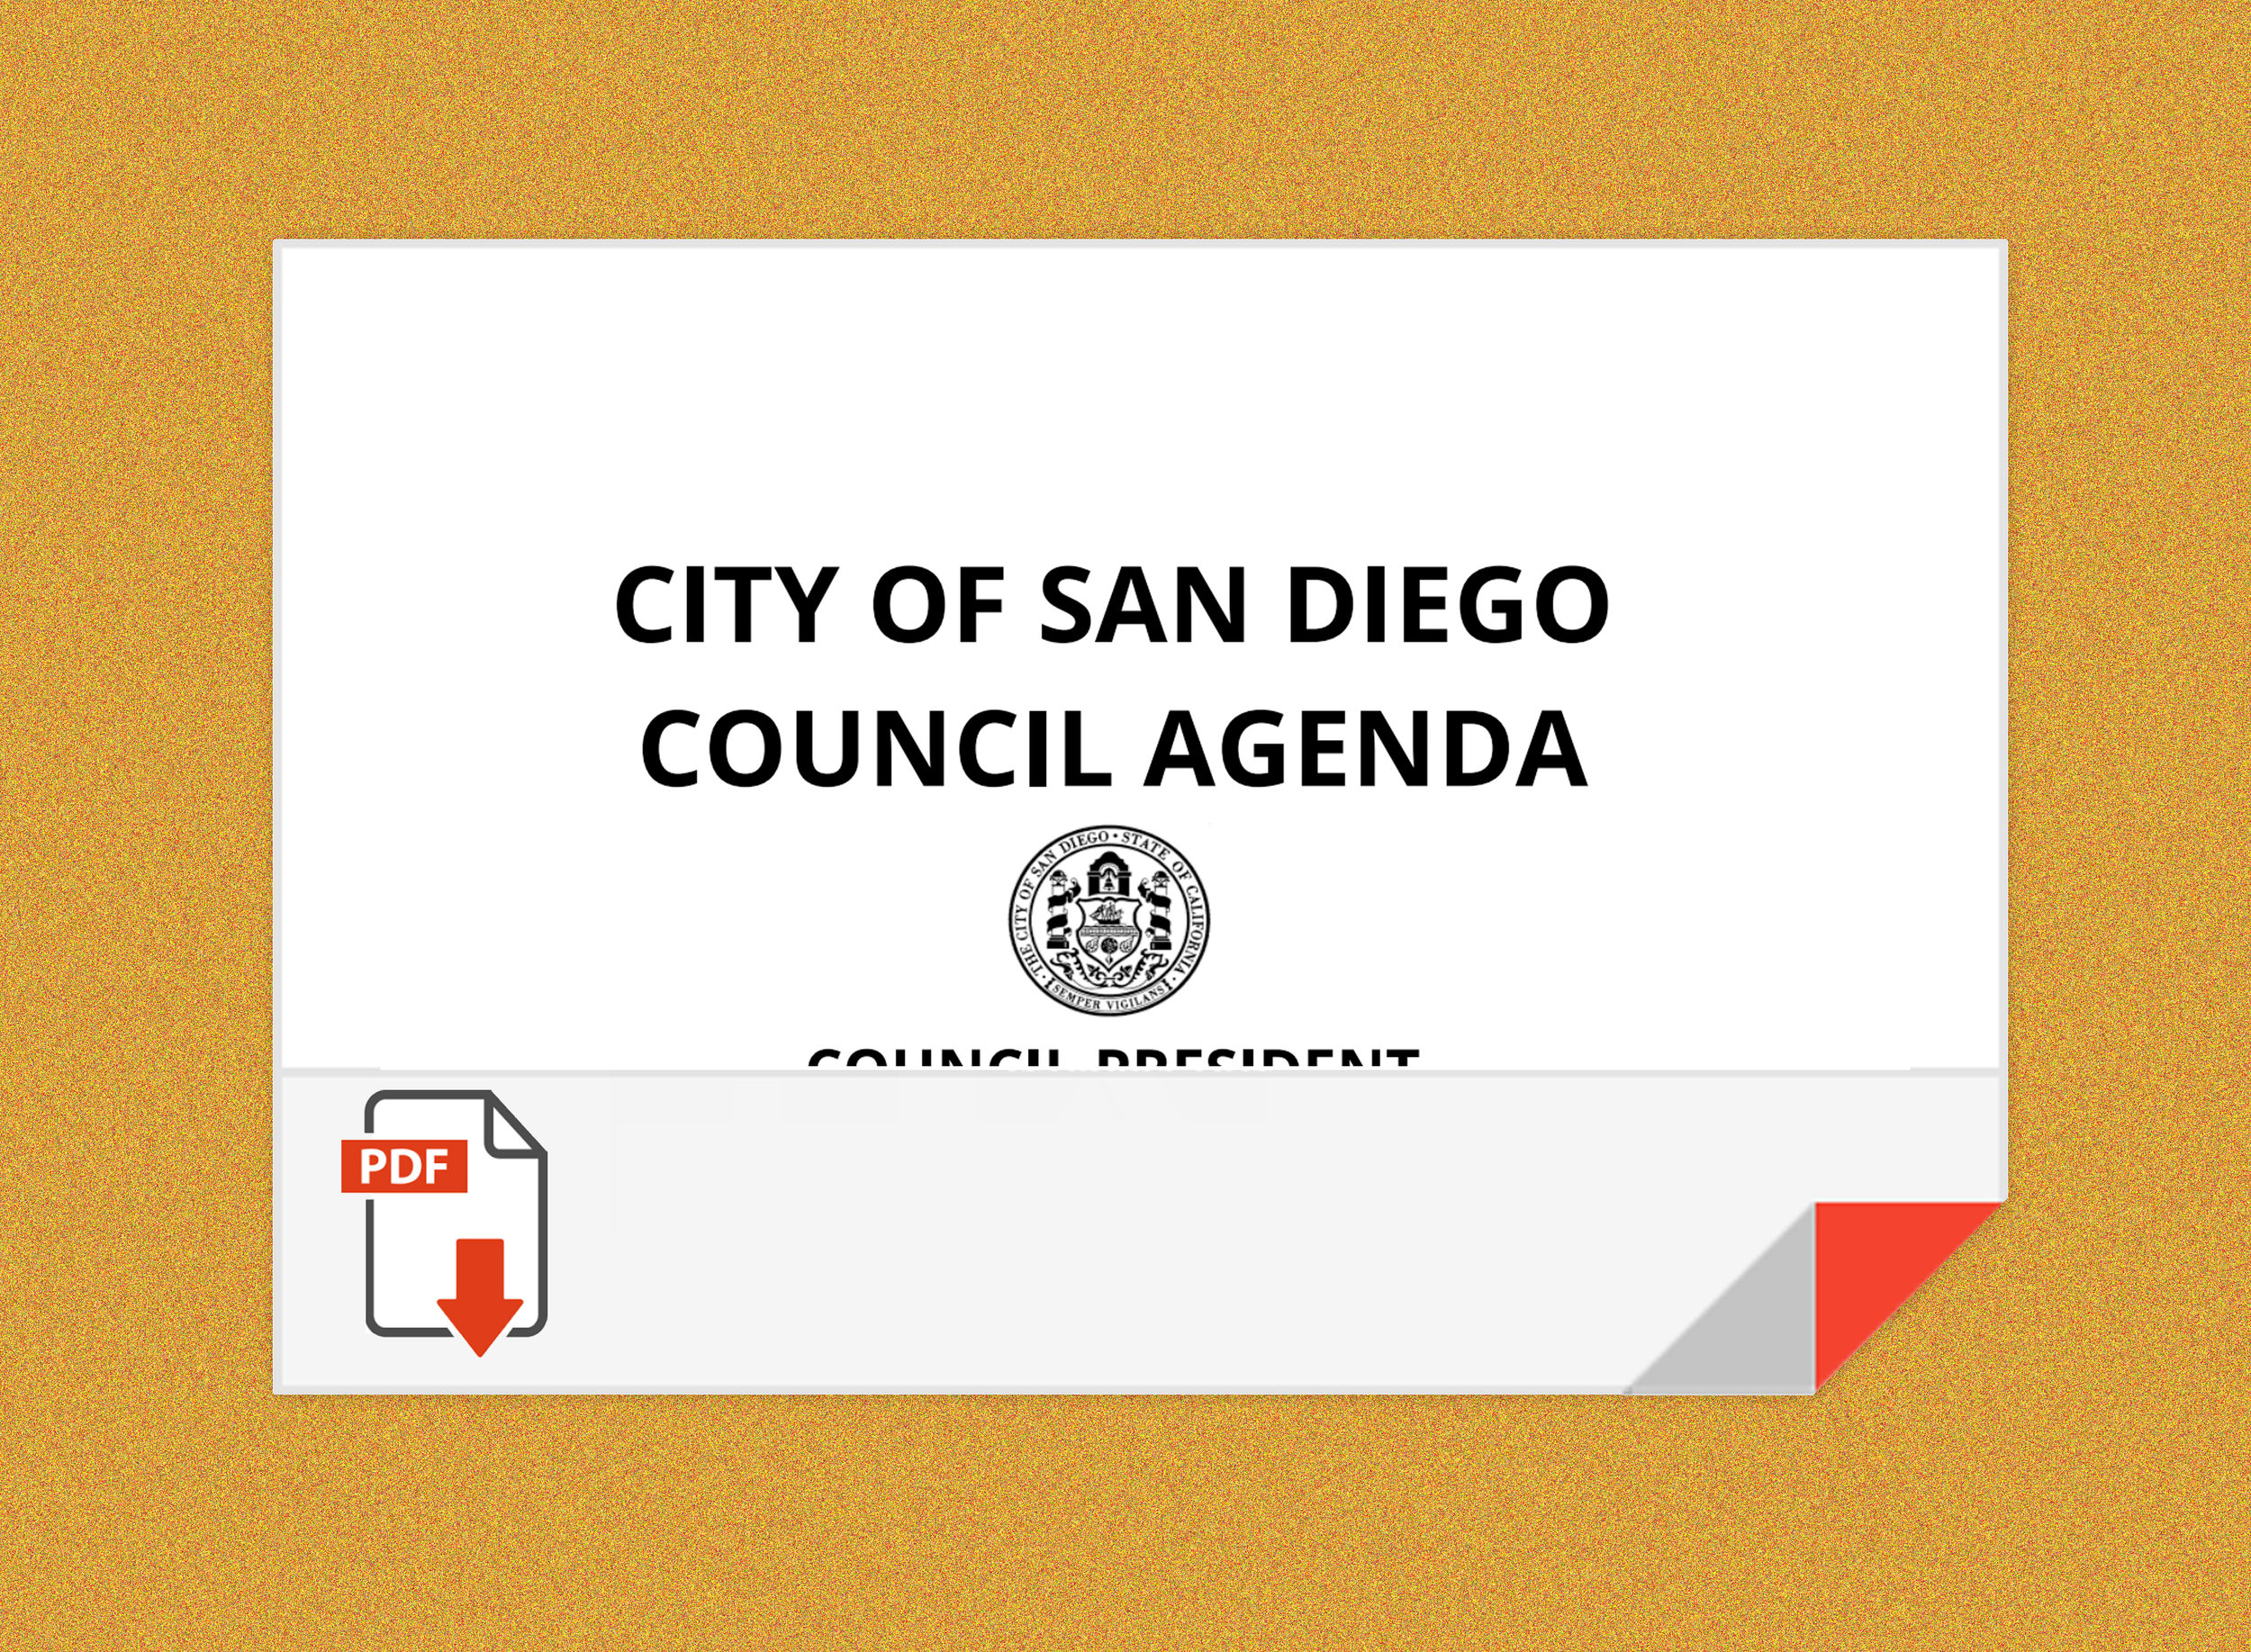 Download the Council docket here.